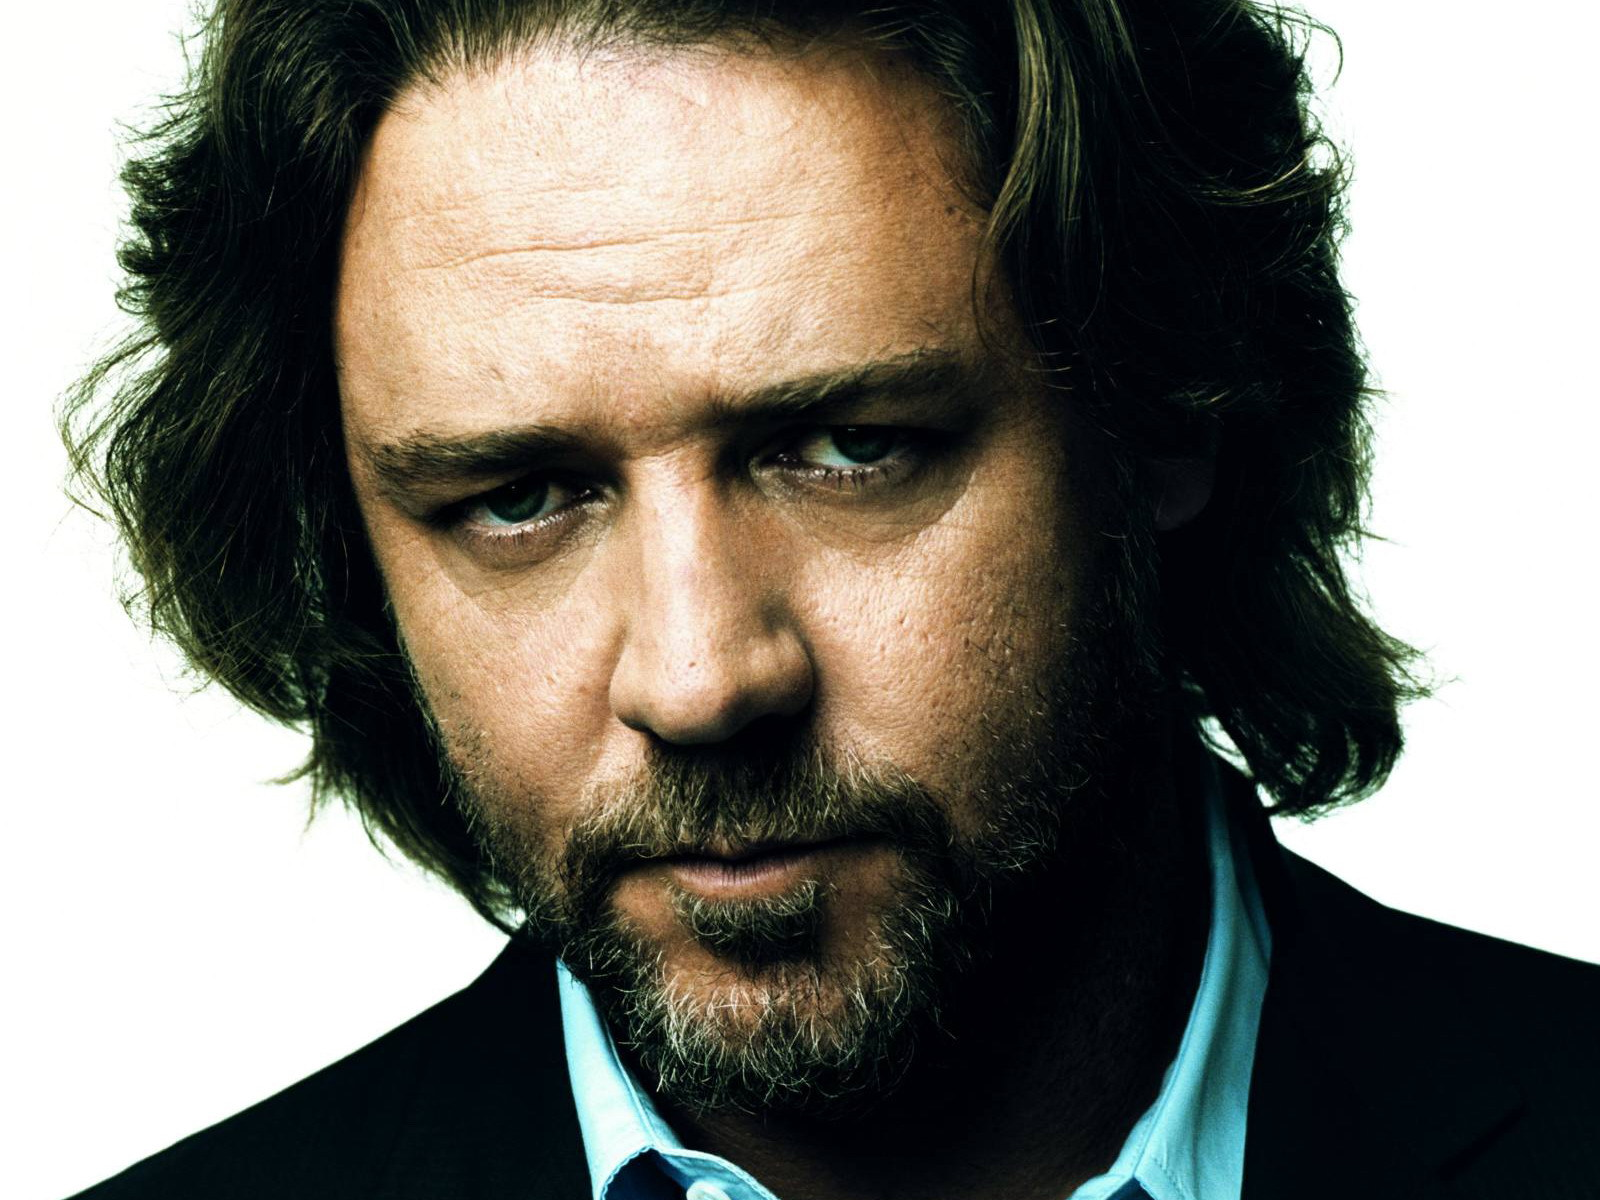 Images Of Cute Background Wallpapers Russell Crowe Wallpaper High Definition High Quality